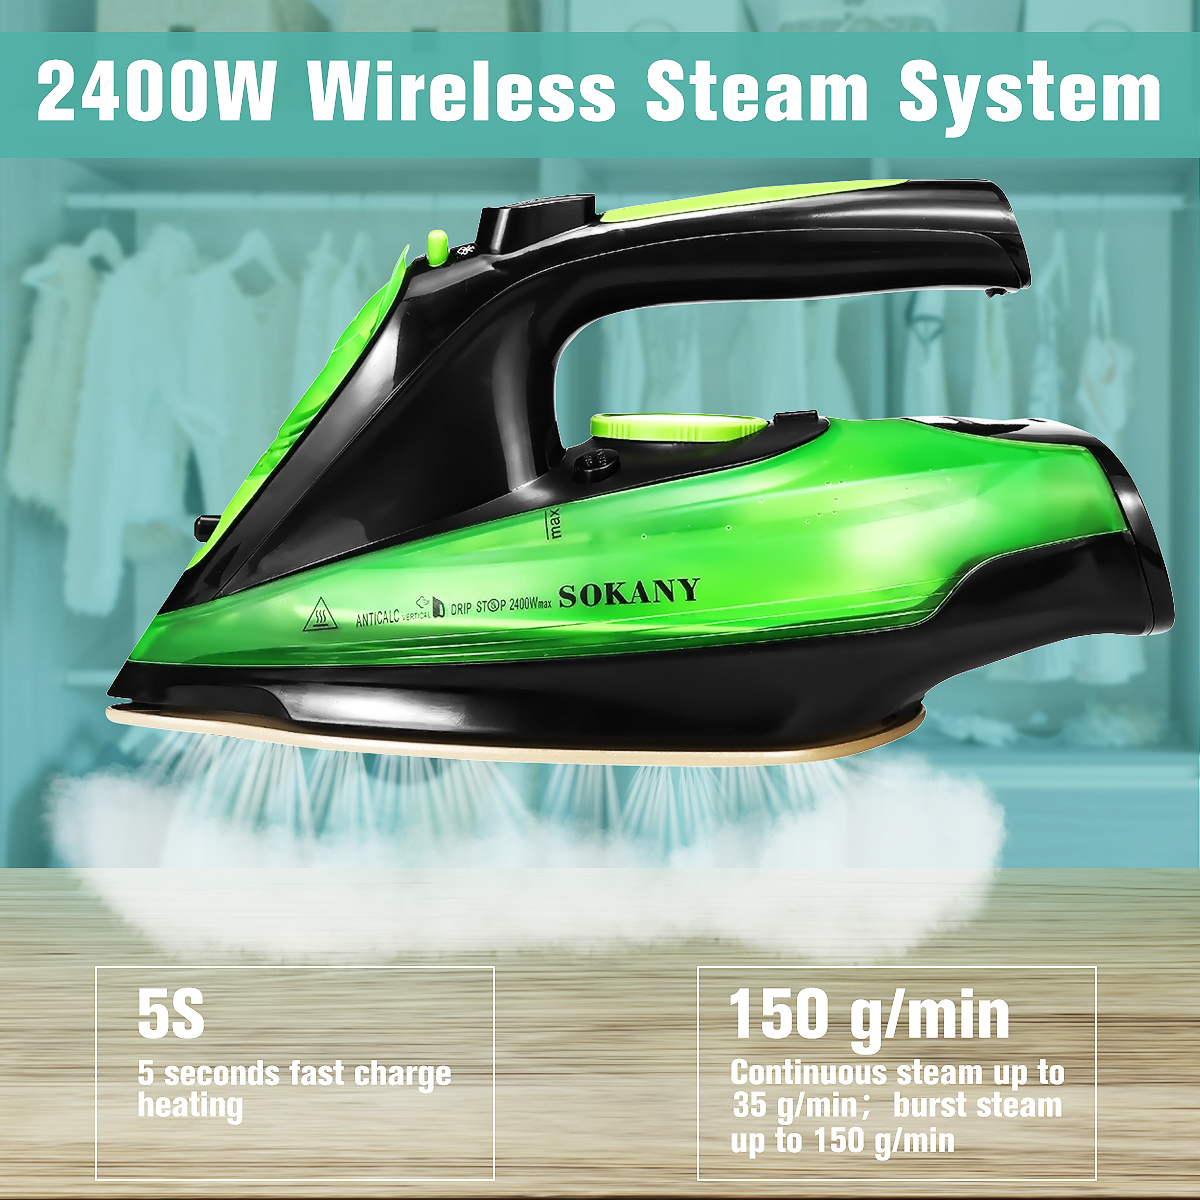 2400W 5 Speed Adjust Cordless Wireless Charging Portable Steam Iron Clothes Ironing Steamer Portable Ceramic Soleplate EU Plug2400W 5 Speed Adjust Cordless Wireless Charging Portable Steam Iron Clothes Ironing Steamer Portable Ceramic Soleplate EU Plug